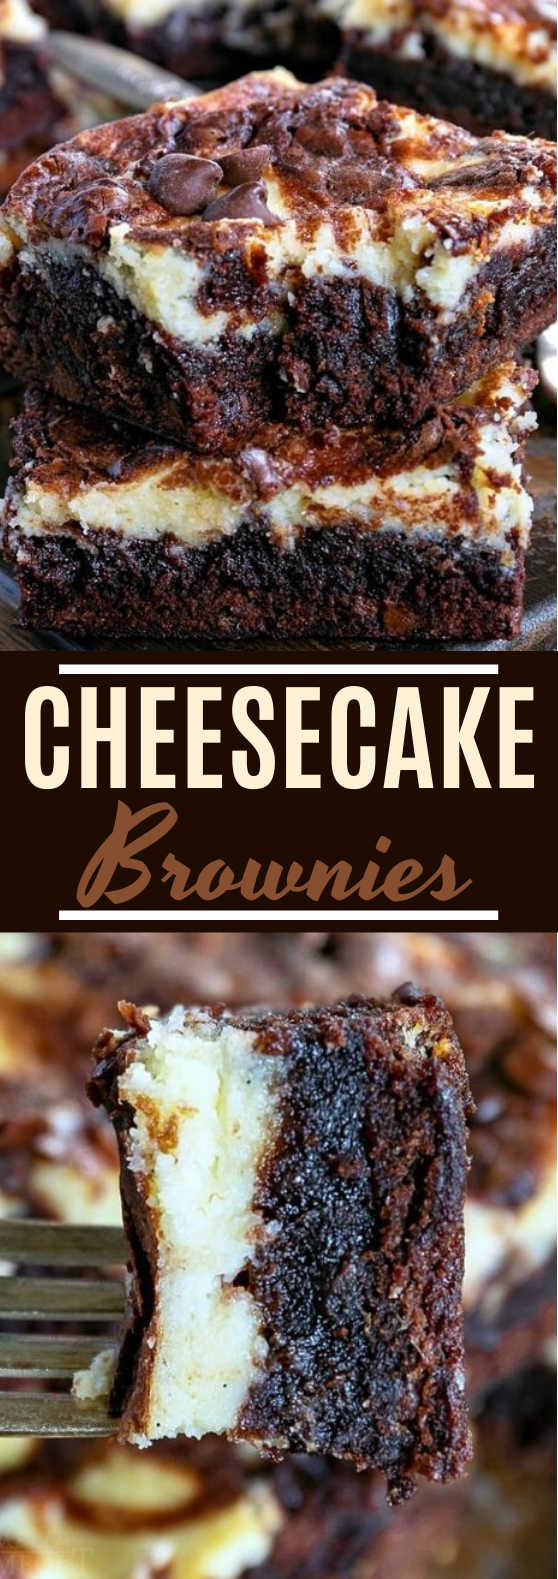 Cheesecake Brownies #cake #brownies #desserts #cheesecake #chocolate